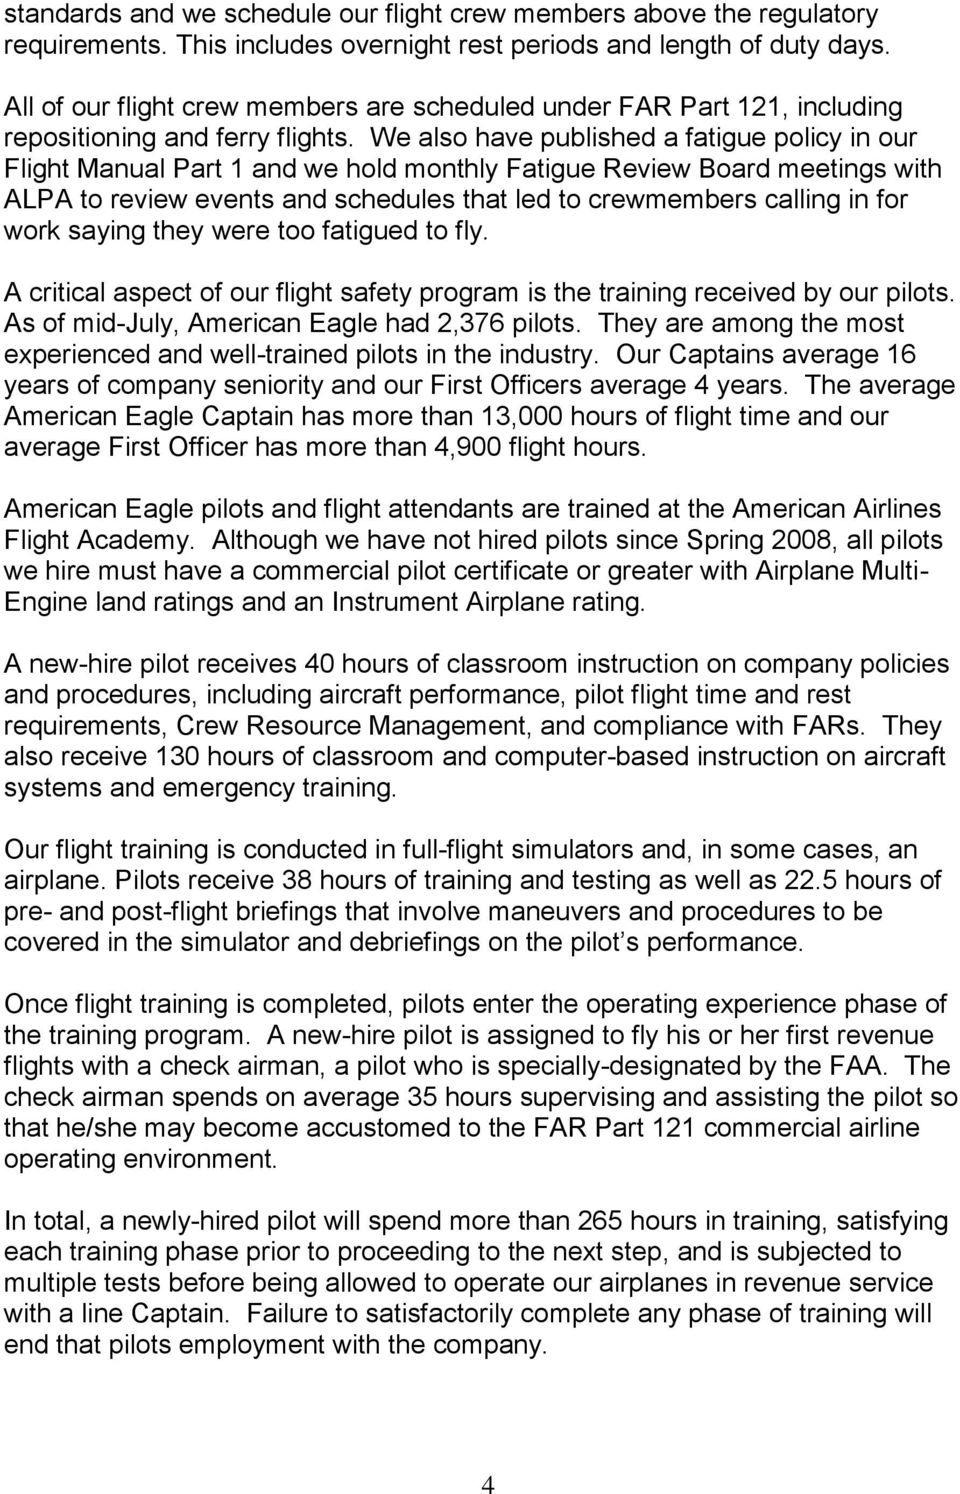 We also have published a fatigue policy in our Flight Manual Part 1 and we hold monthly Fatigue Review Board meetings with ALPA to review events and schedules that led to crewmembers calling in for